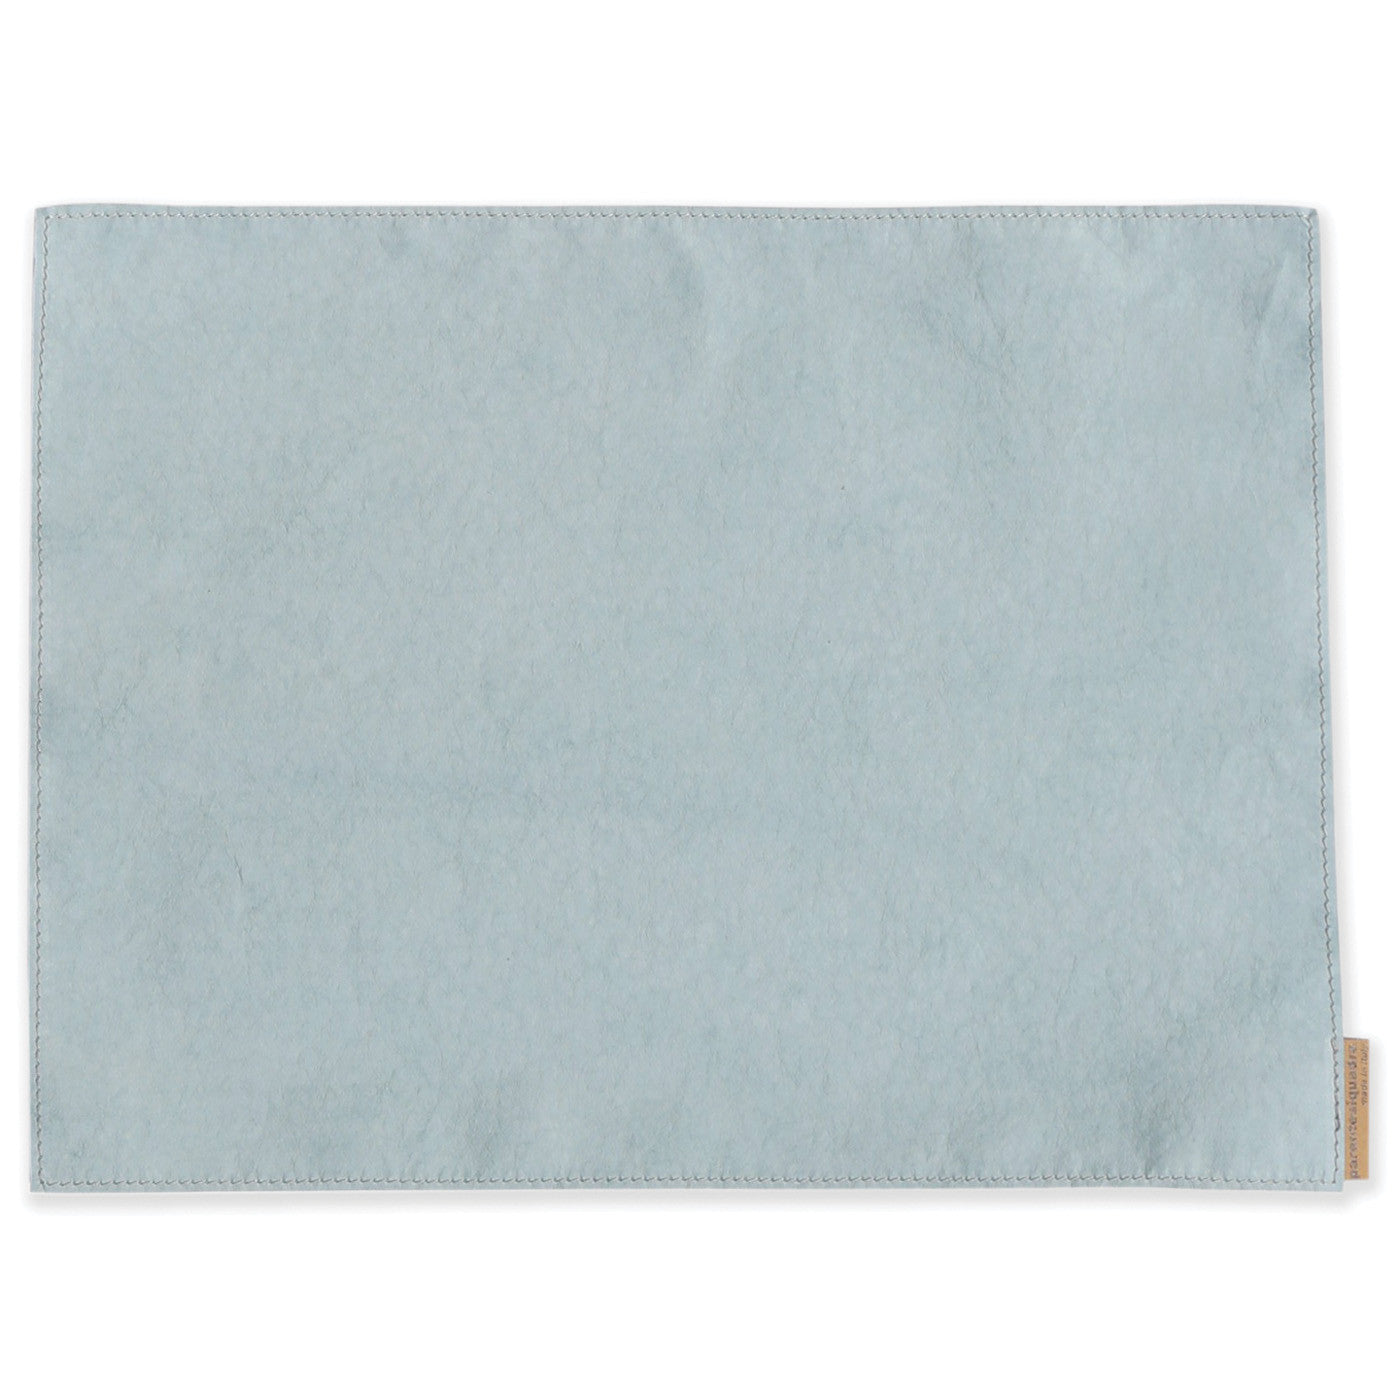 Aqua Paper Placemats (Set of 4)